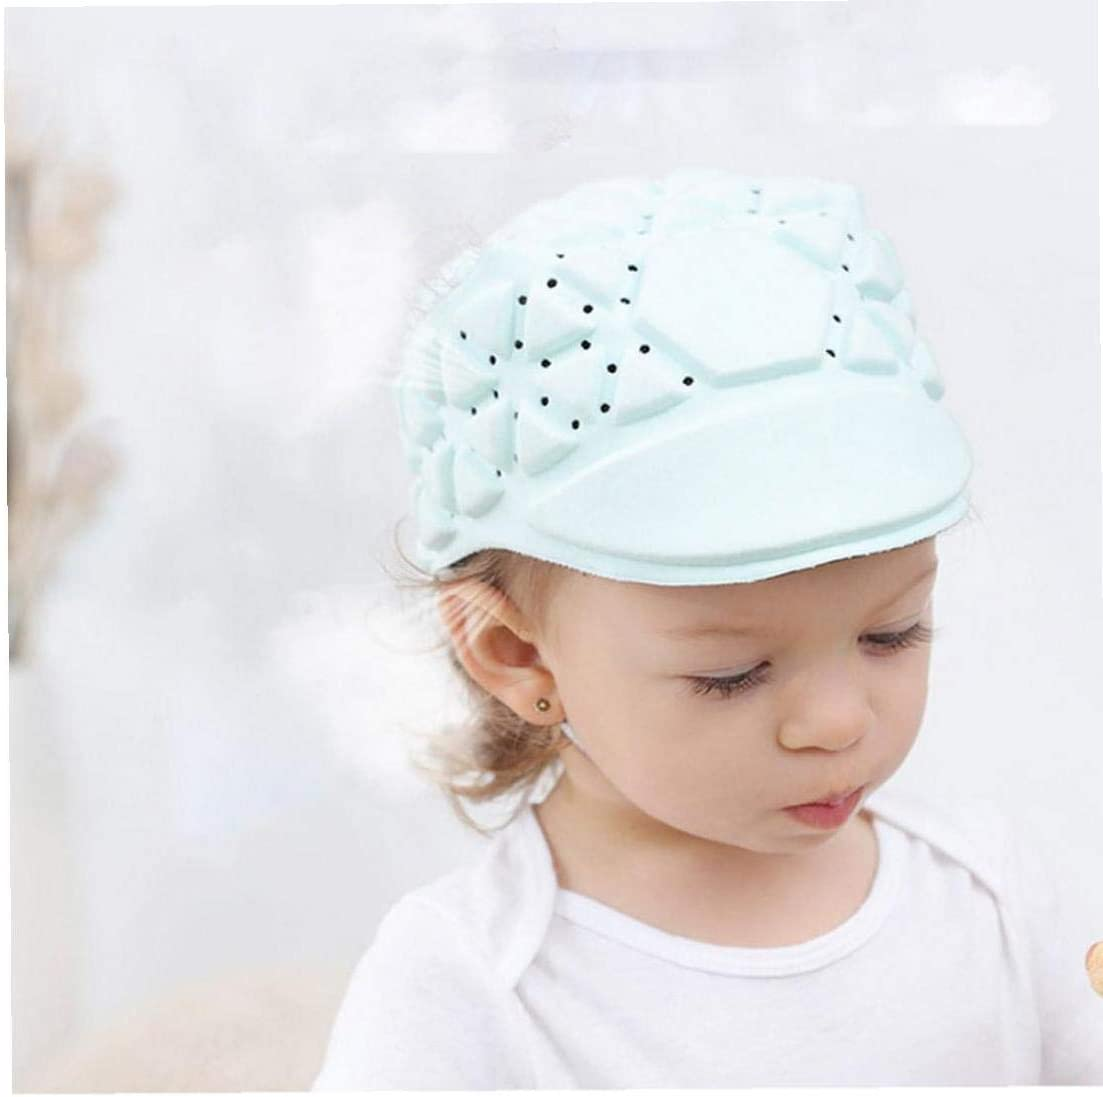 Baby Toddler Hat Baby Protector Head Breathable Toddler Impact Proof Helmet with Adjustable Straps Safety Protective Cap for Infant Learns to Walk Green